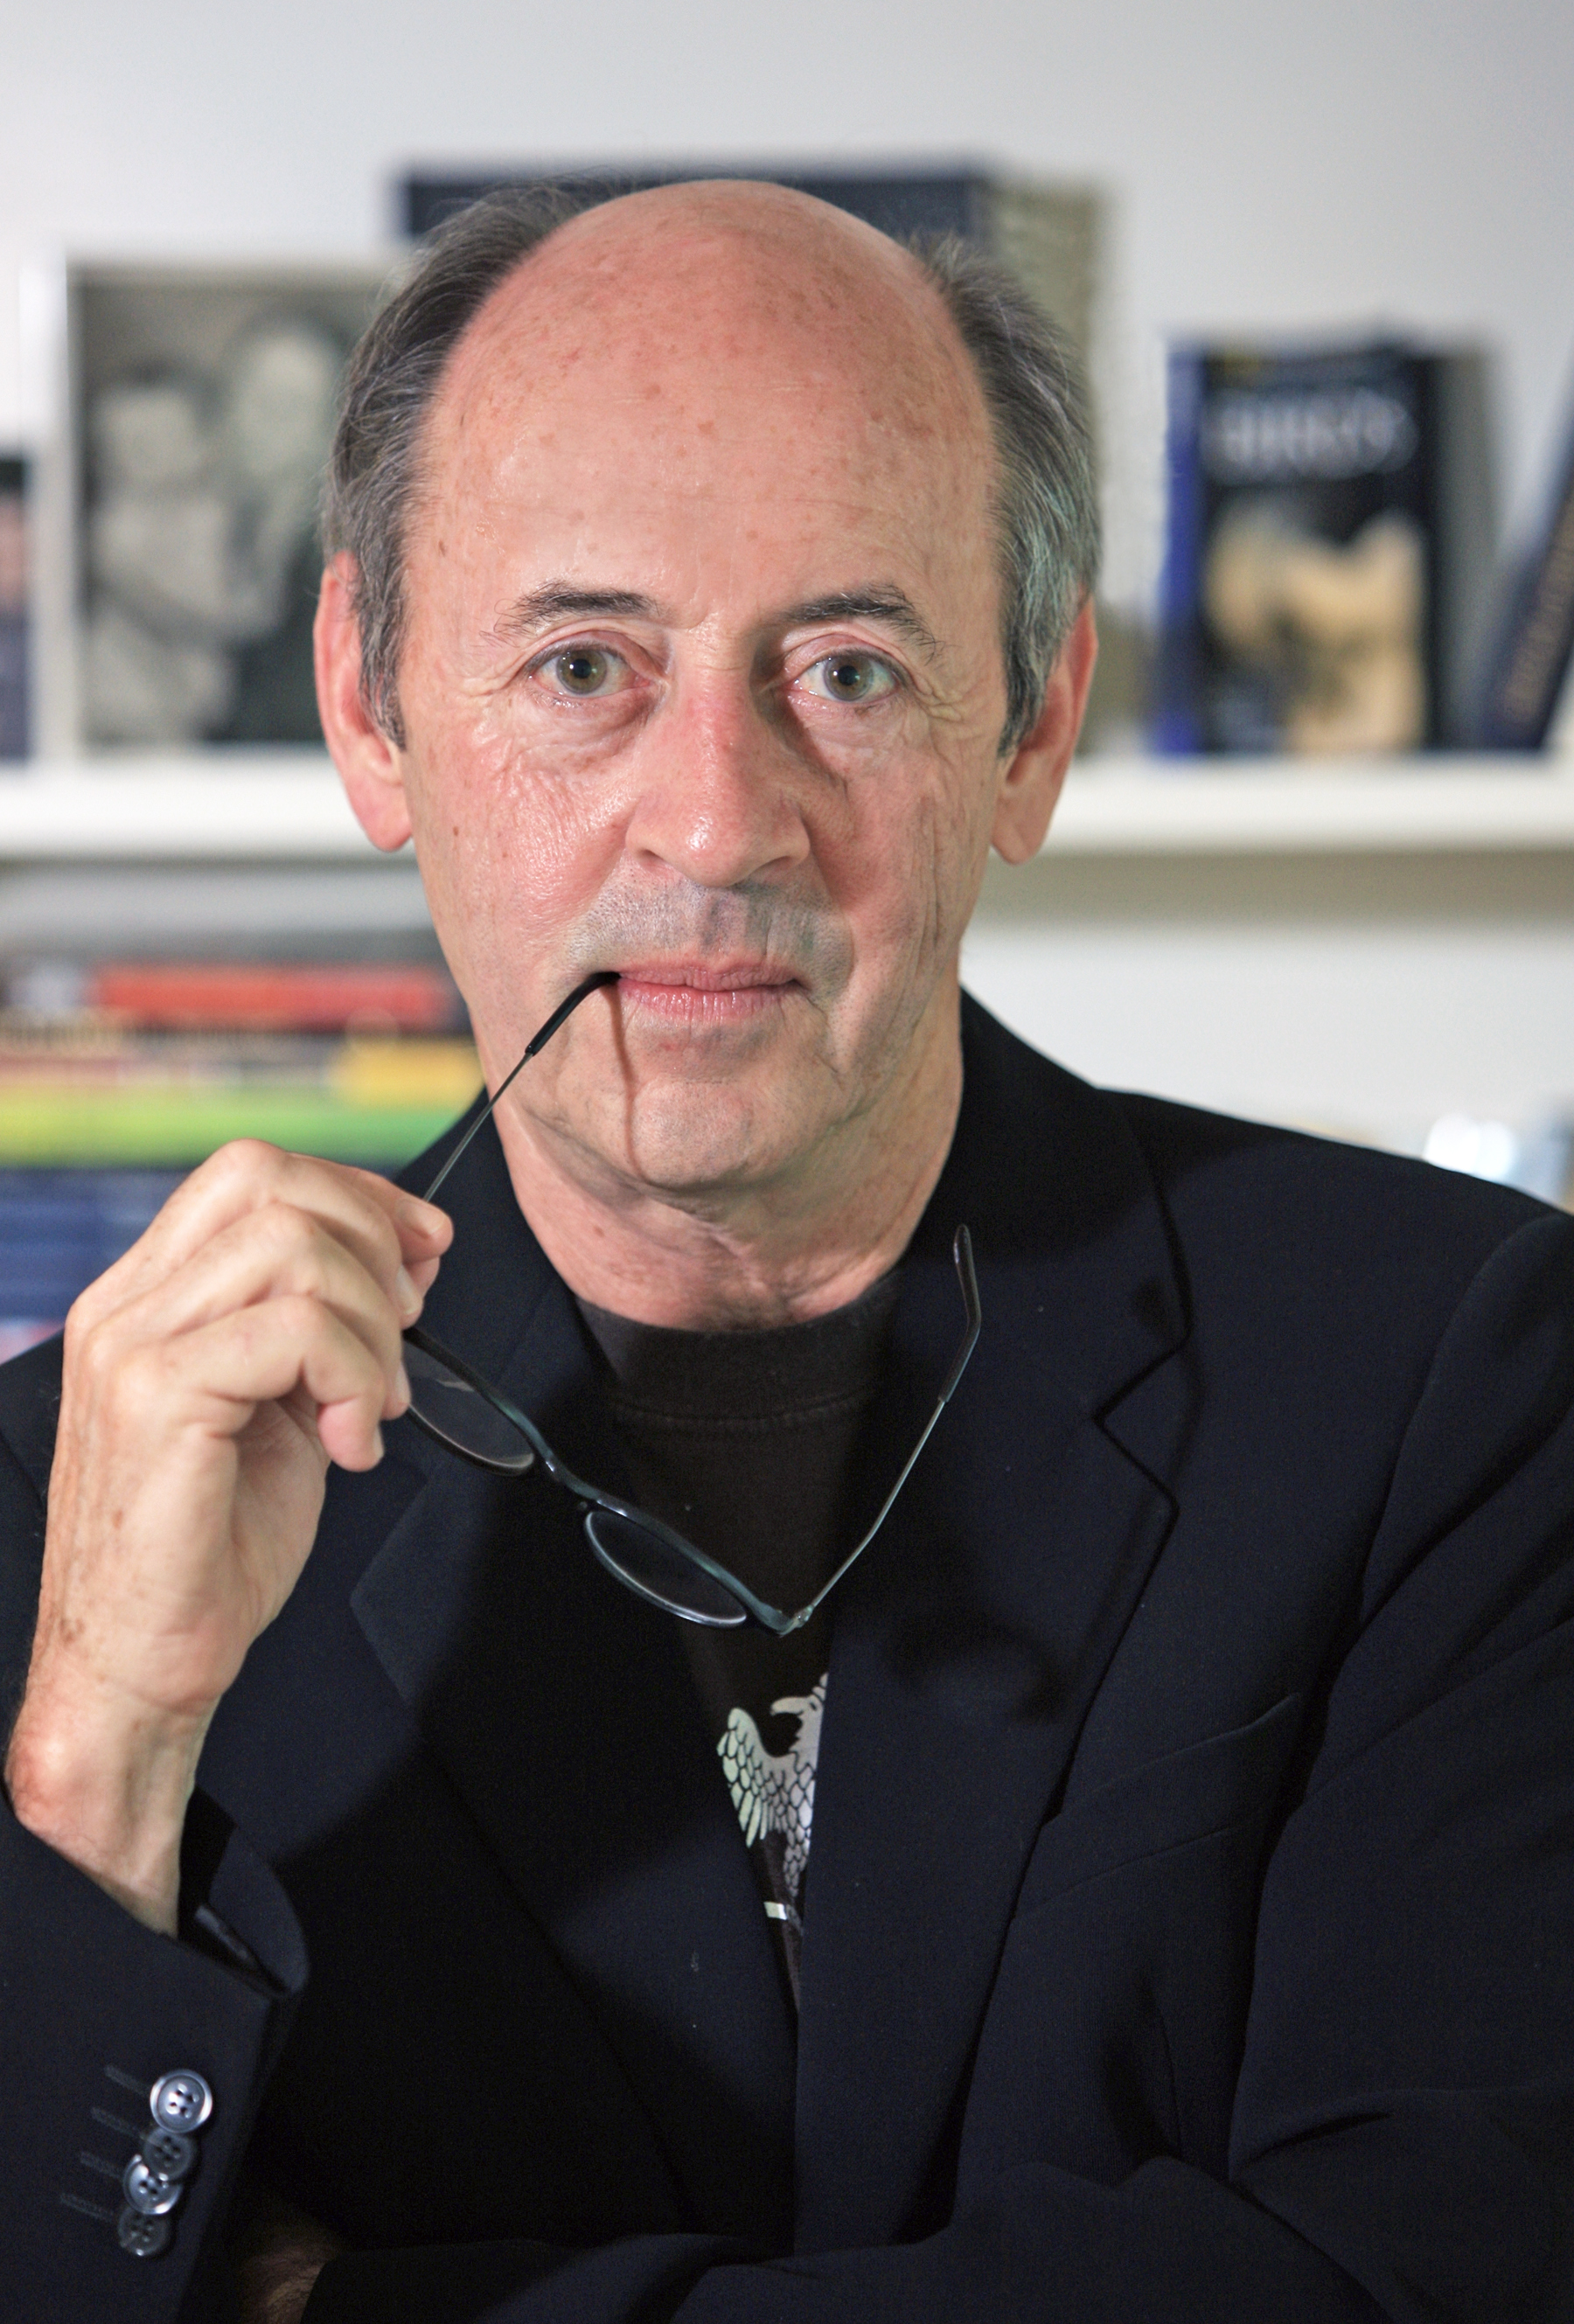 billy collins explication Exploring contrasts in the lanyard, by billy collins in the lanyard, by billy collins, the speaker remembers a gift he made for his mother.